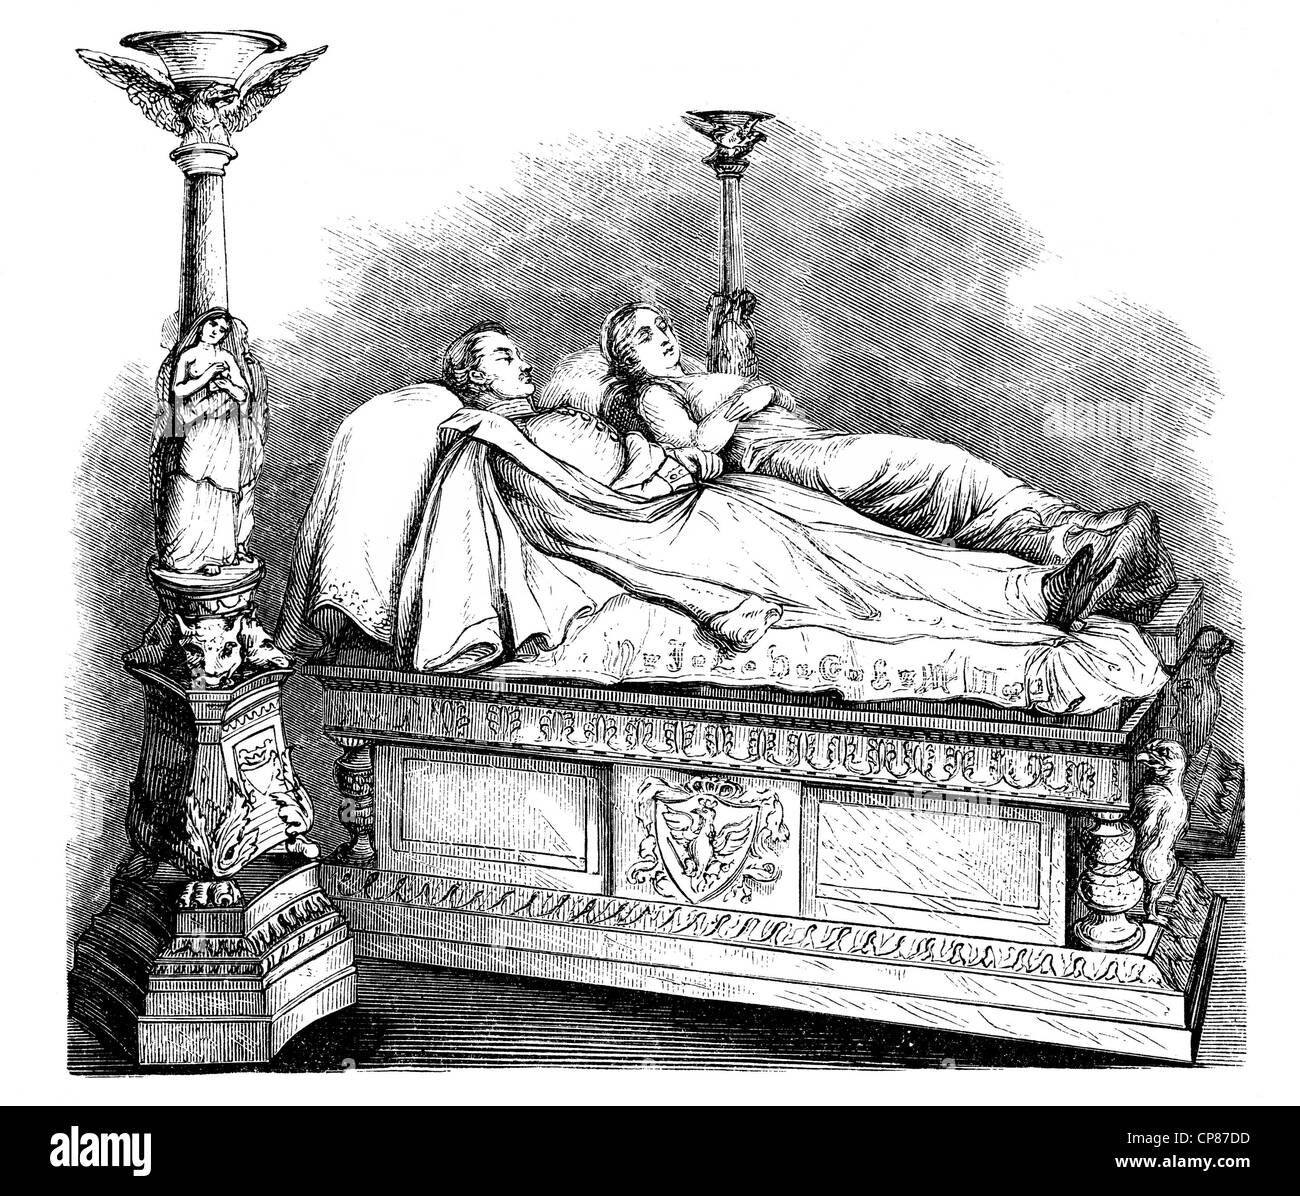 The tomb of Louise of Mecklenburg-Strelitz, 1776–181, queen consort of Prussia and King Friedrich Wilhelm III, 1770 Stock Photo